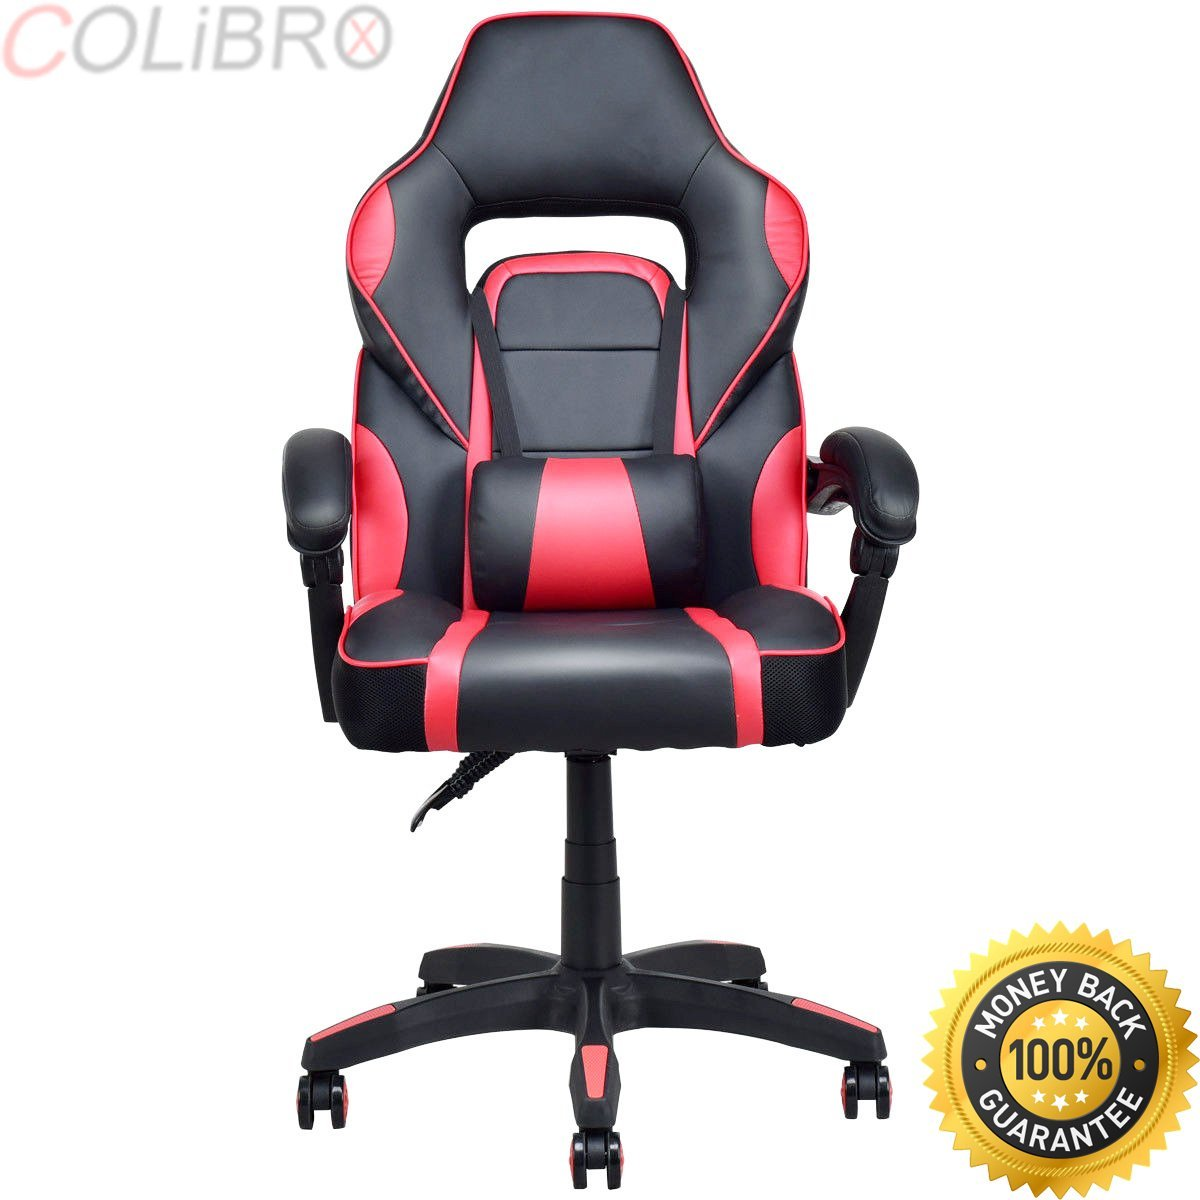 COLIBROX--Executive Racing Style PU Leather Gaming Chair High Back Recliner Office Red. high back executive racing reclining gaming chair swivel pu leather office chair. best gaming chair amazon.